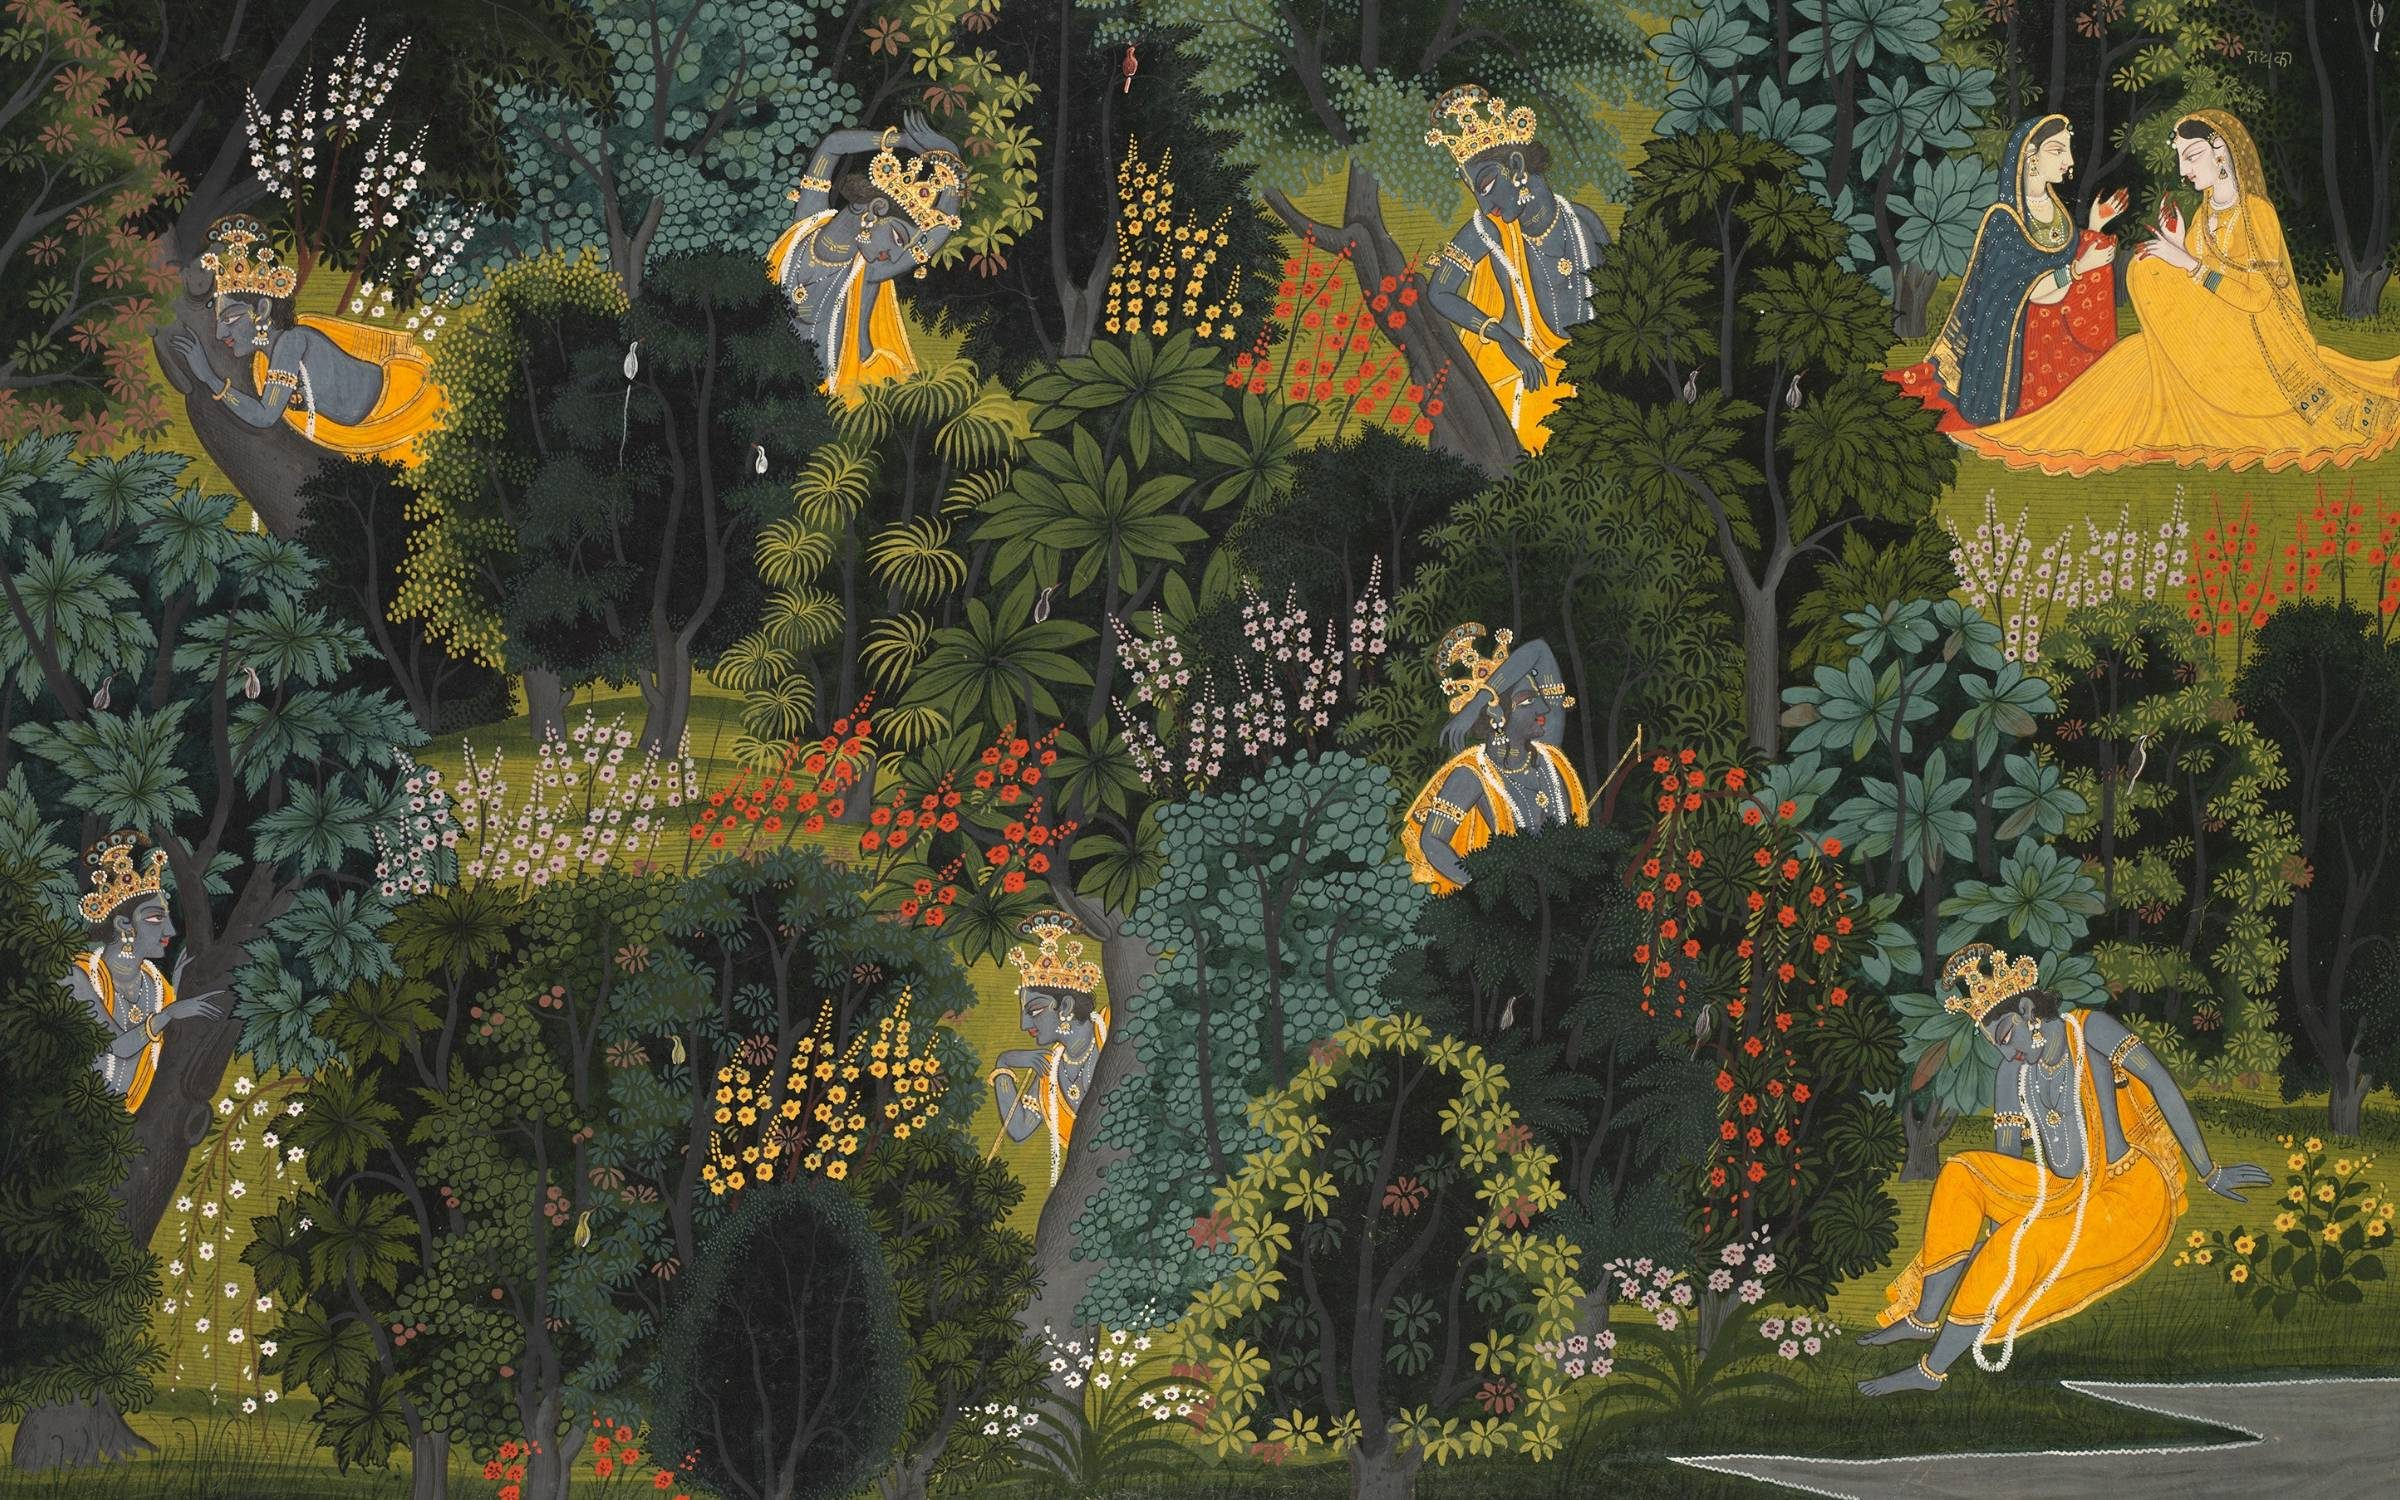 Krishna's Longing for Radha, from the Gita Govinda of Jayadeva, circa 1820-1825. In the lush forests on the banks of India?s Yamuna River, the youthful god Krishna waits to rendezvous with his beloved Radha. The artist has rendered his impatience by showing seven Krishnas, in various attitudes of anxious waiting, as though seeing him over a period of time. Meanwhile Radha, dressed in yellow at top right, confers seemingly endlessly with her confidante, as she tries to decide whether she should meet Krishna for the illicit tryst?she is already married and Krishna is prone to flirting with other girls. This scene is a metaphor for how god waits for us to come to him, while the human devotee frets about the bonds of social norms. Creator Unknown. (Photo by Heritage Arts/Heritage Images via Getty Images)